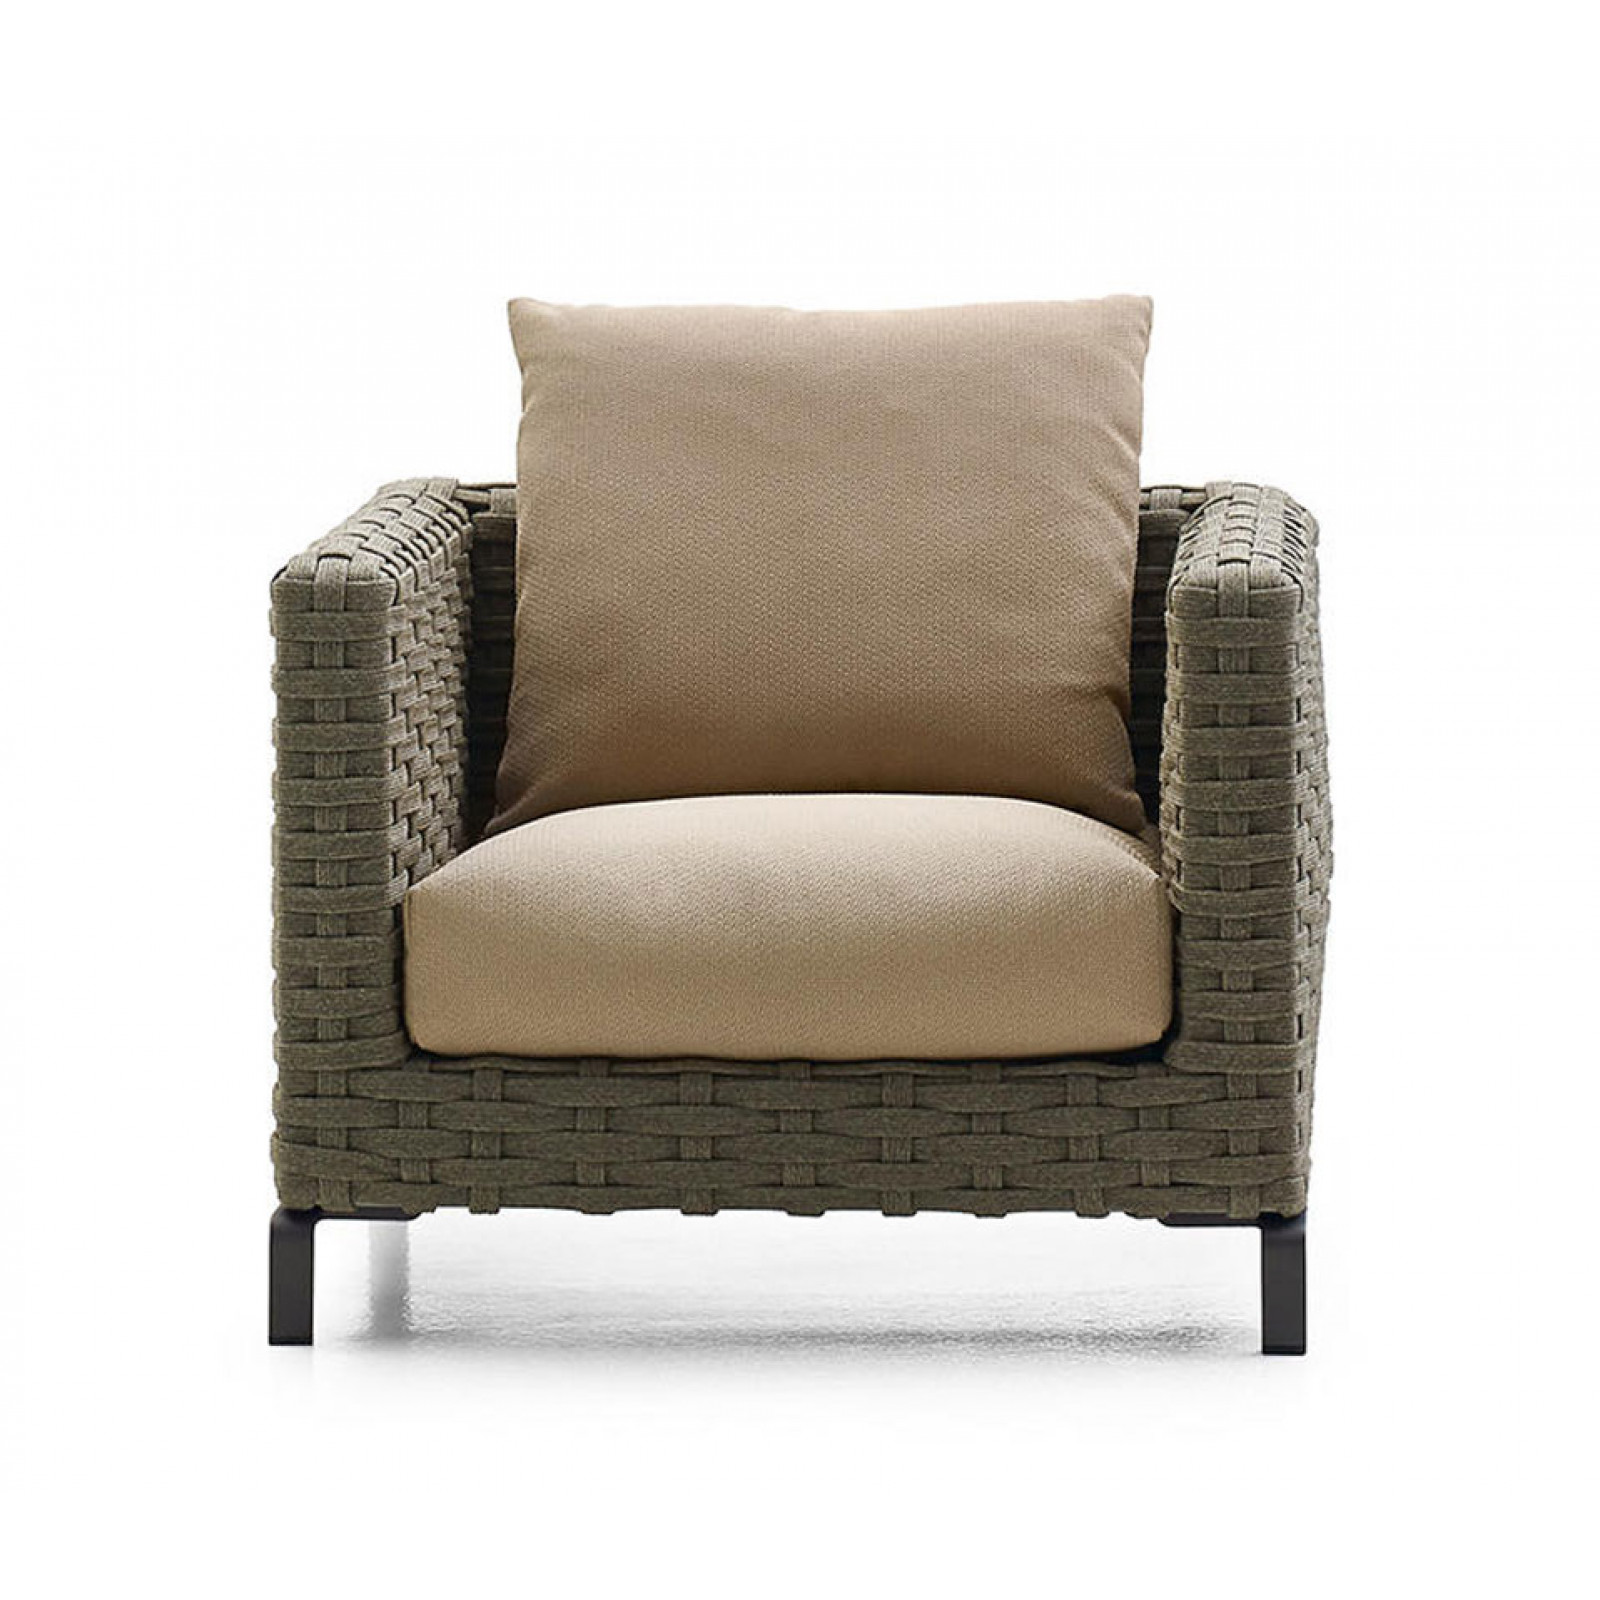 B&B Italia Ray Outdoor Natural Loungesessel 85 cm